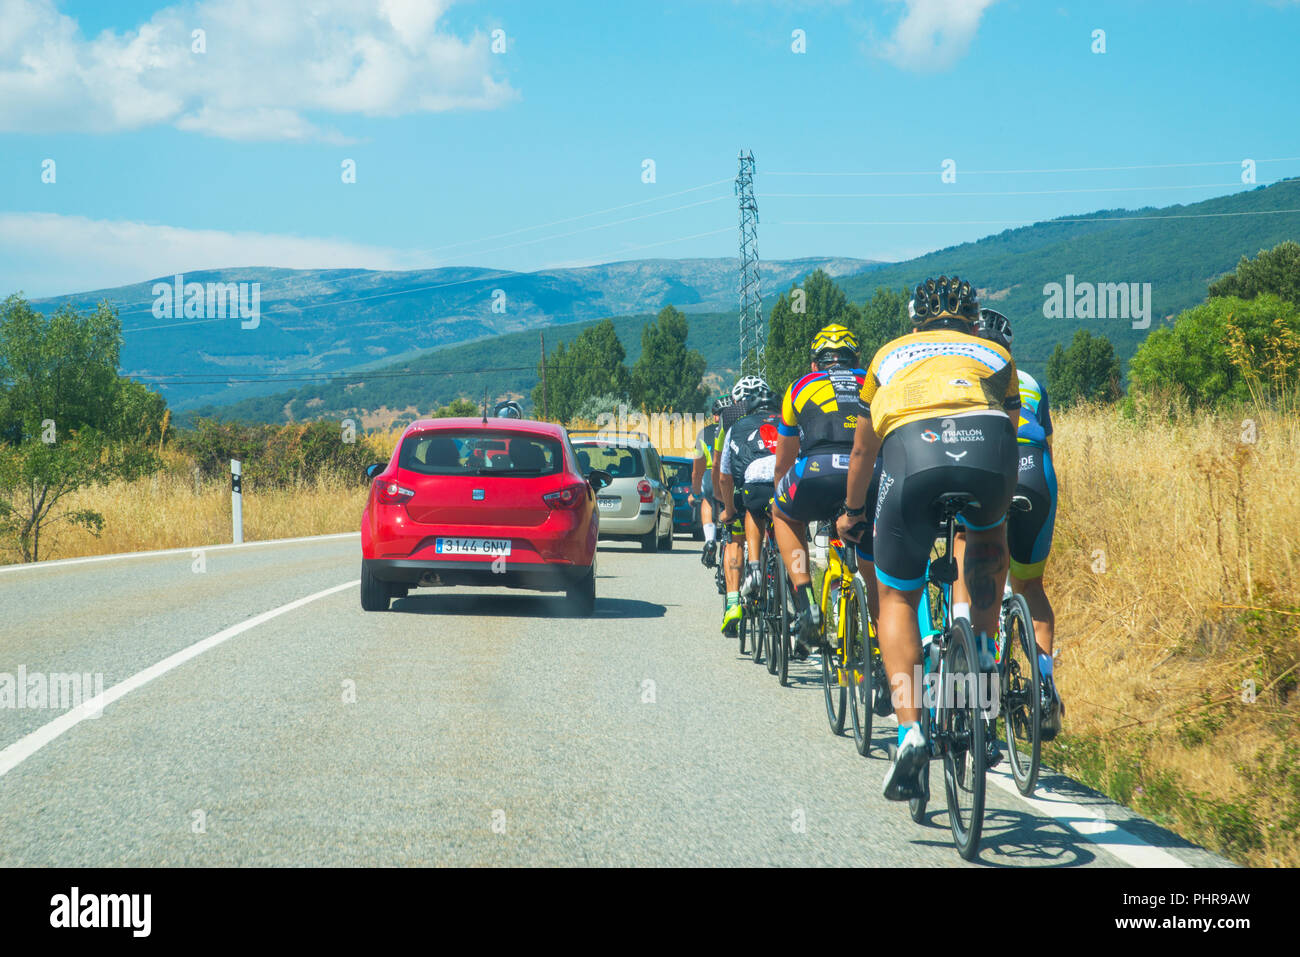 Cars overtaking a group of ciclists. Lozoya, Madrid province, Spain. - Stock Image